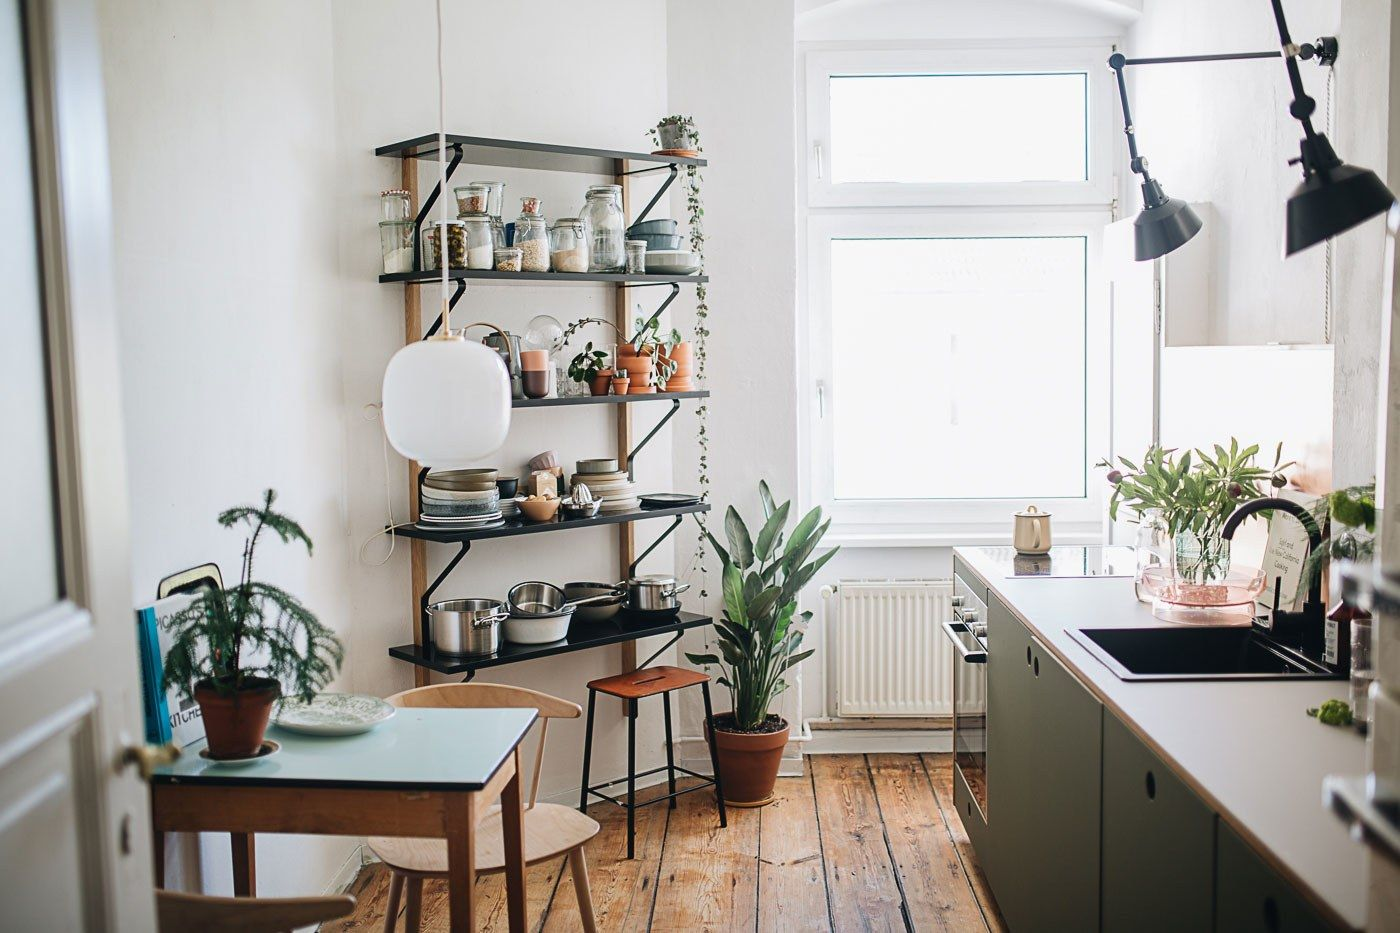 A Small Berlin Kitchen Gets An Earthy Makeover Kitchen Design Small Kitchen Design Kitchen Remodel Small